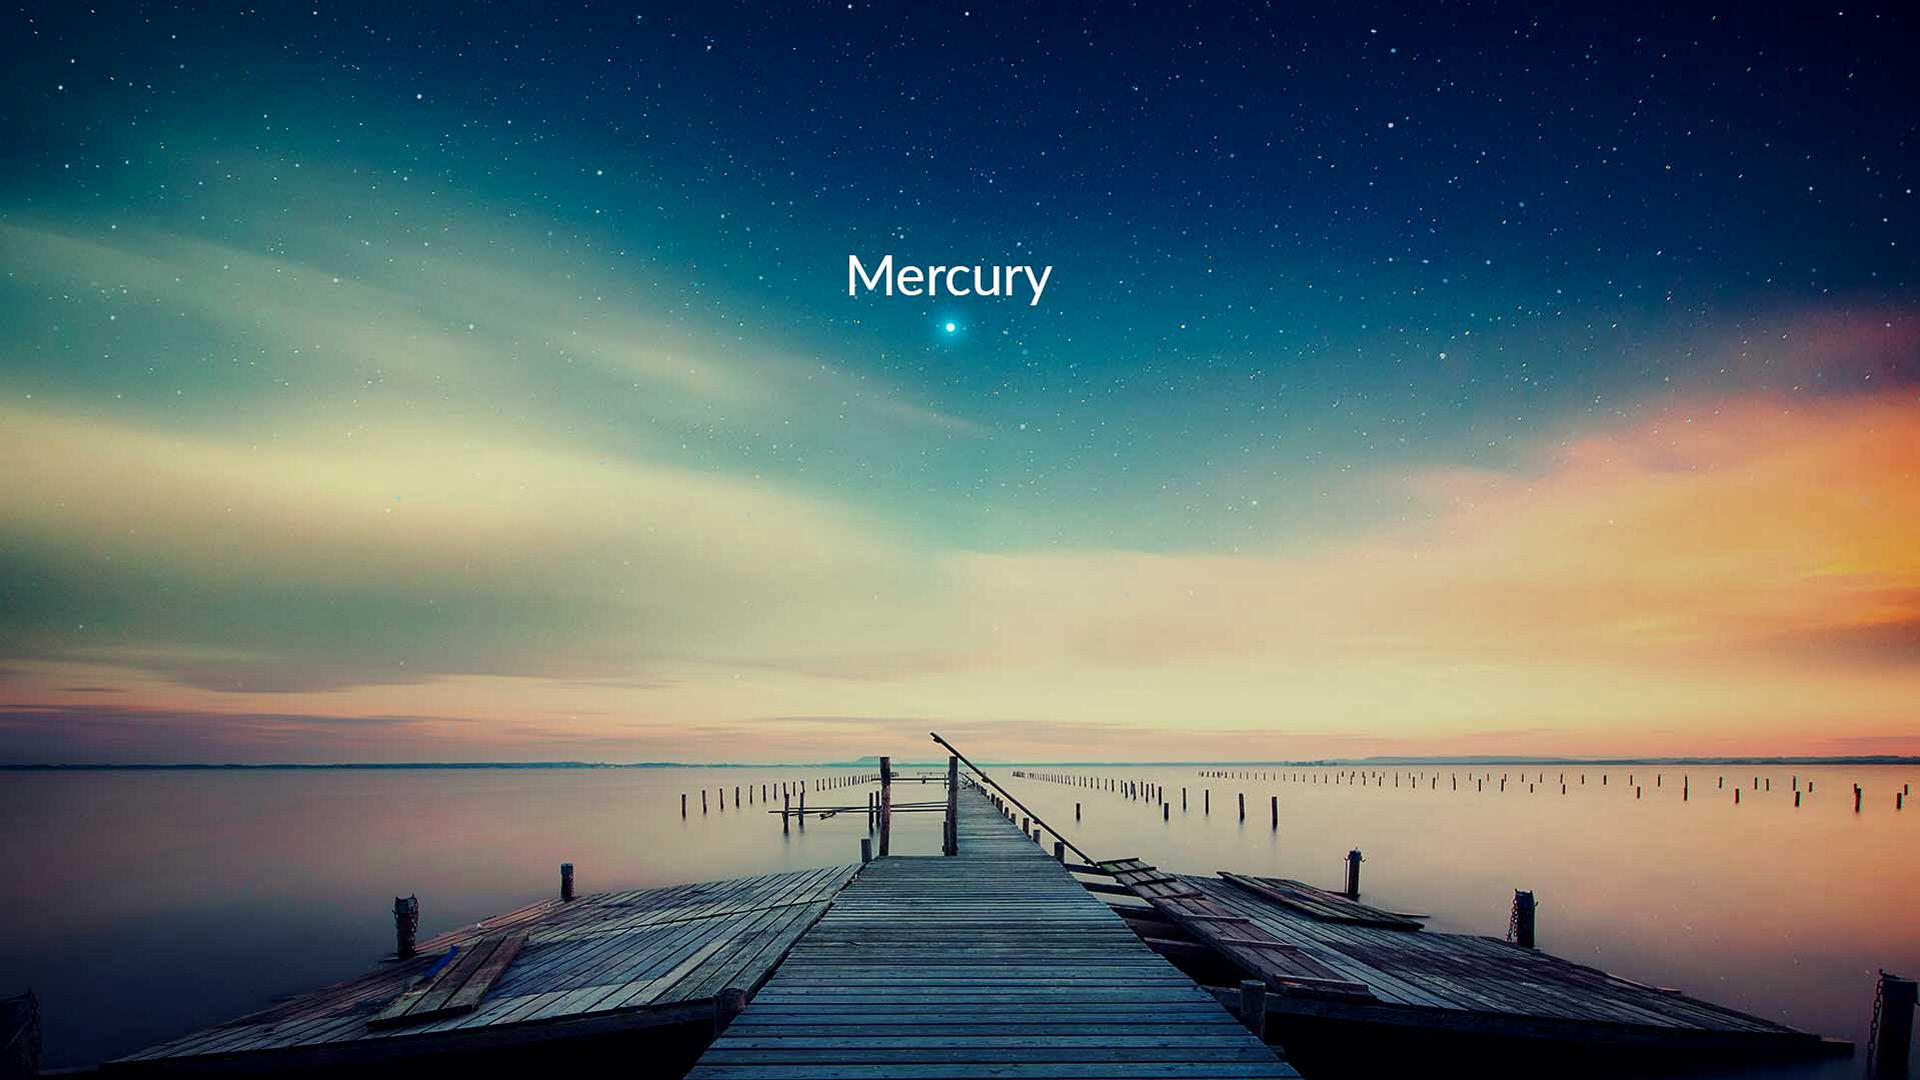 Mercury visible in the evening sky